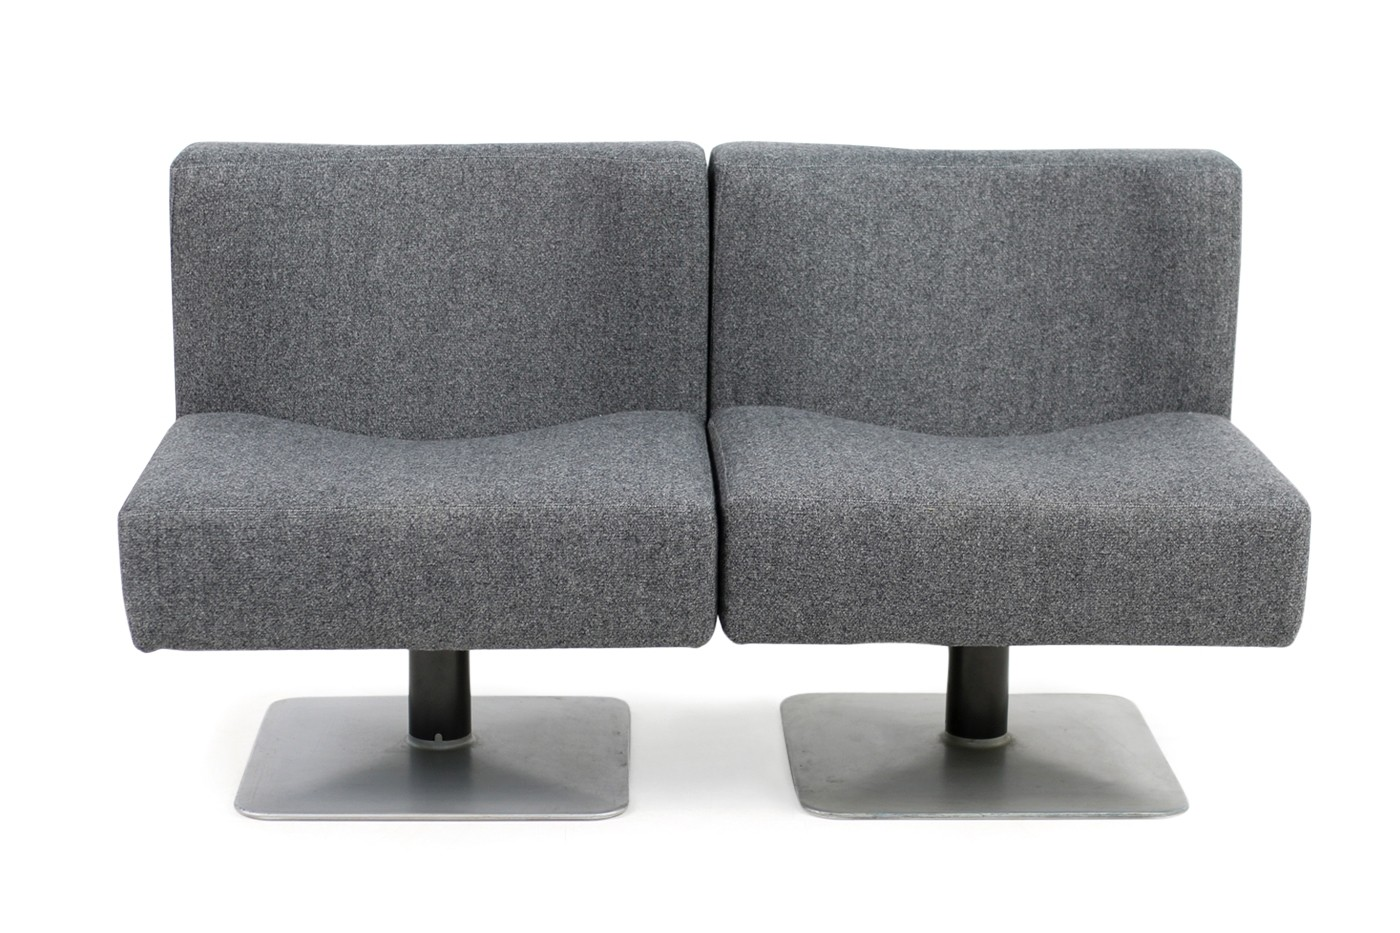 pair of 1970s modular lounge chairs herbert hirche for mauser 1974 objects. Black Bedroom Furniture Sets. Home Design Ideas